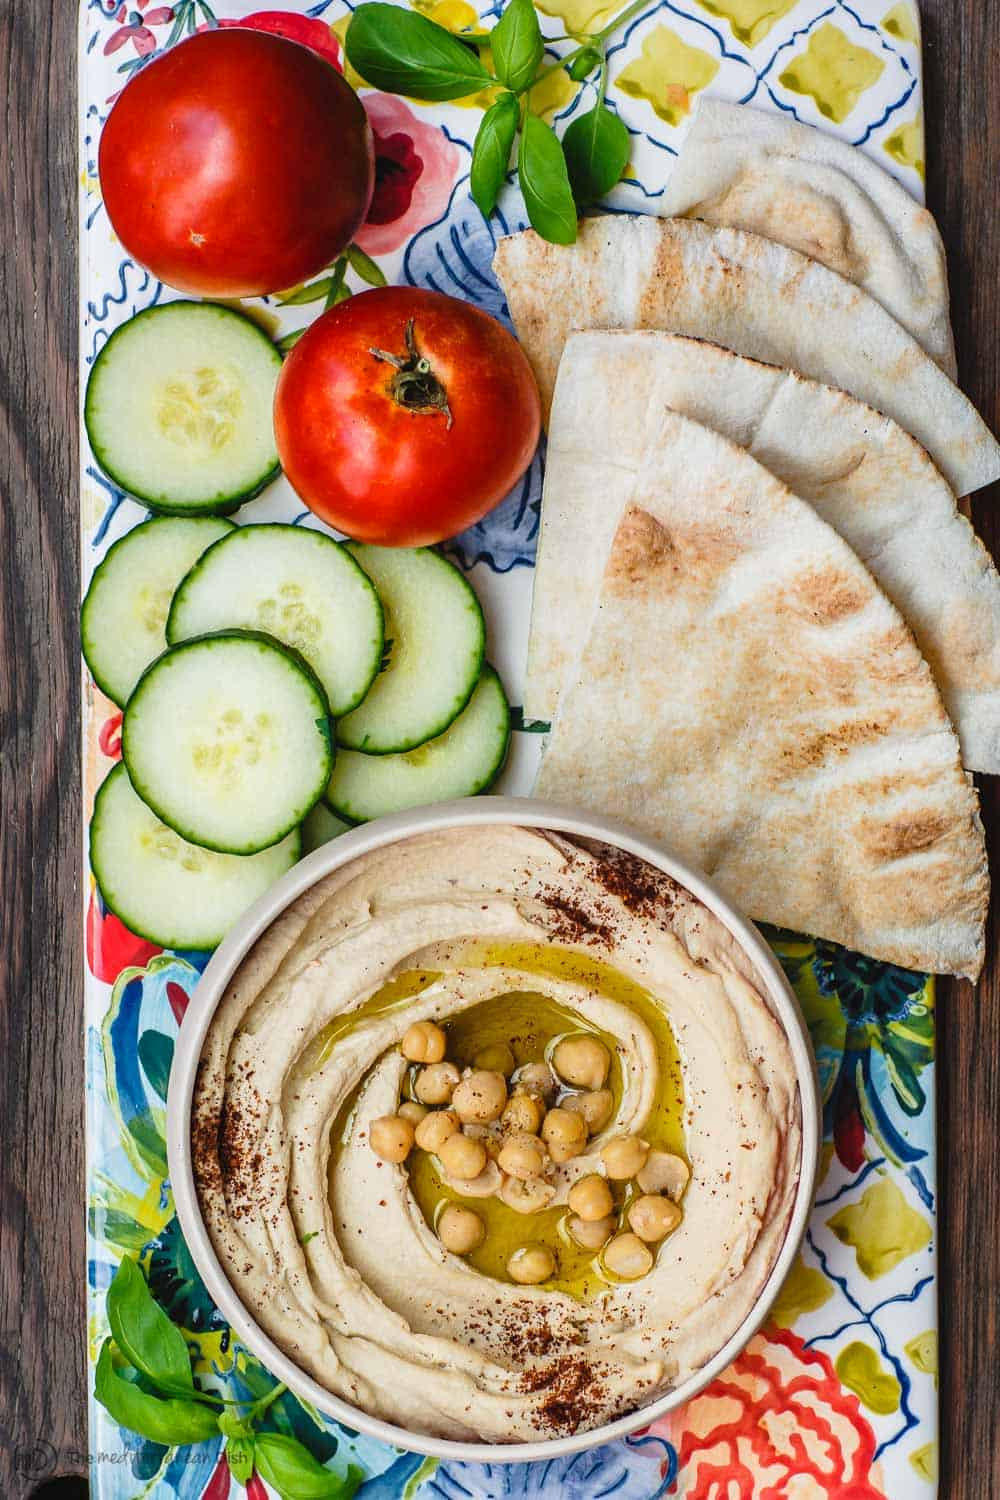 Classic creamy hummus served with olive oil, vegetables and pita